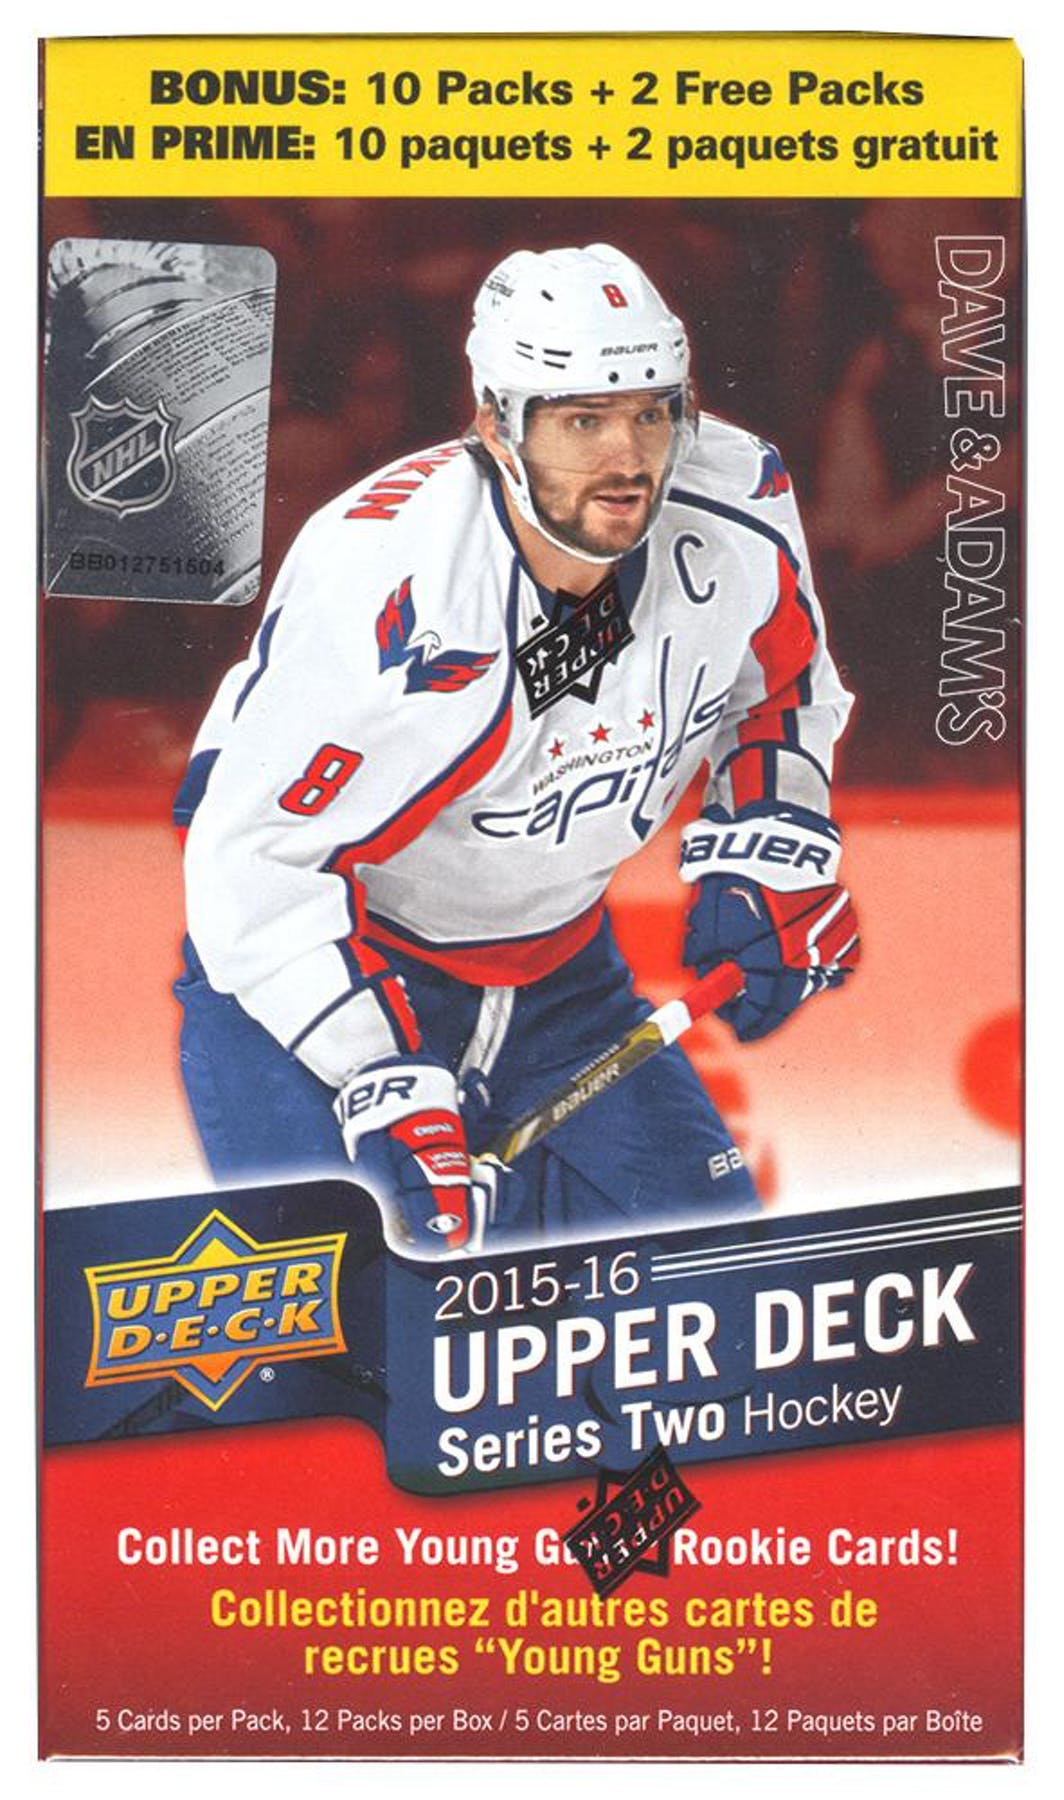 2014 15 upper deck series 2 price guide